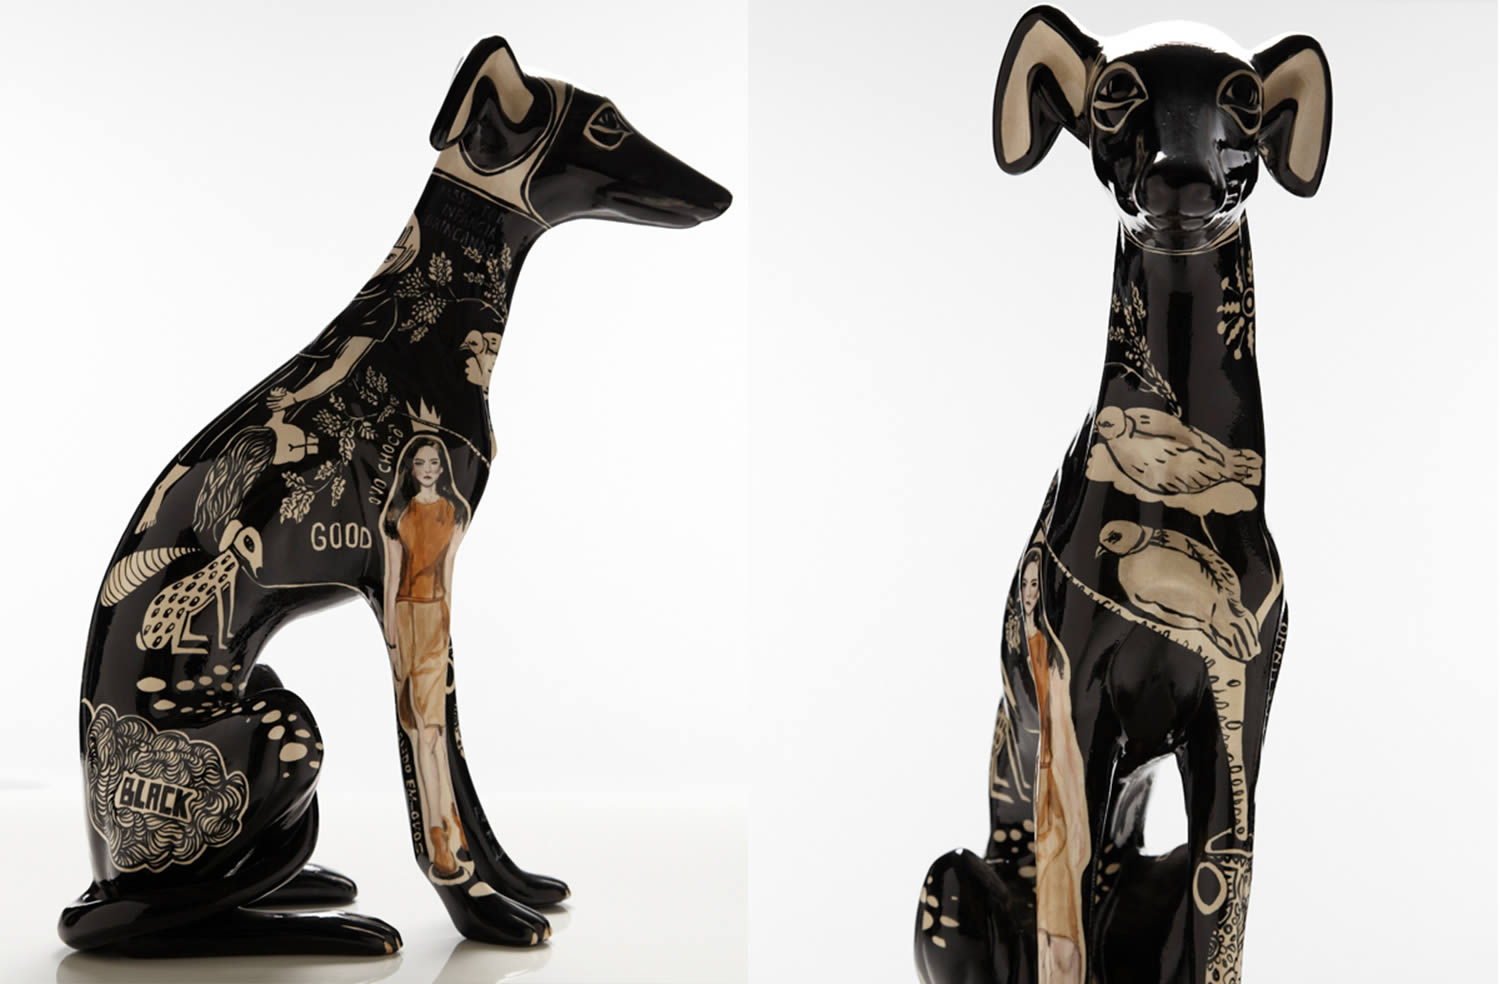 seated greyhound, front and side views